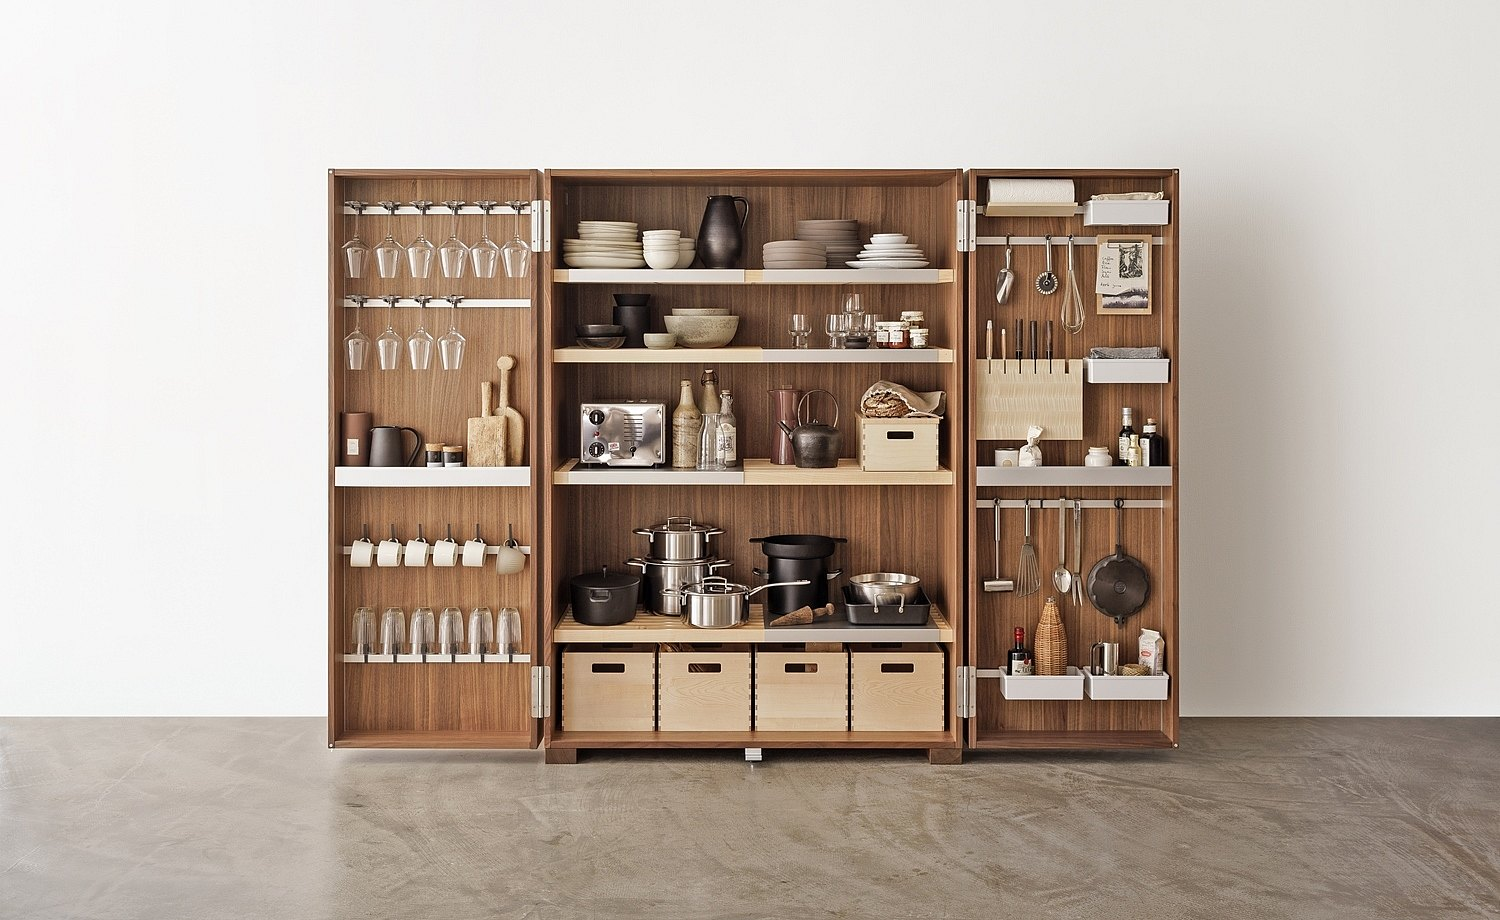 Practically equipped tool cabinet with armature for storing glasses, shelves, compartments, boxes, rods, and knife block